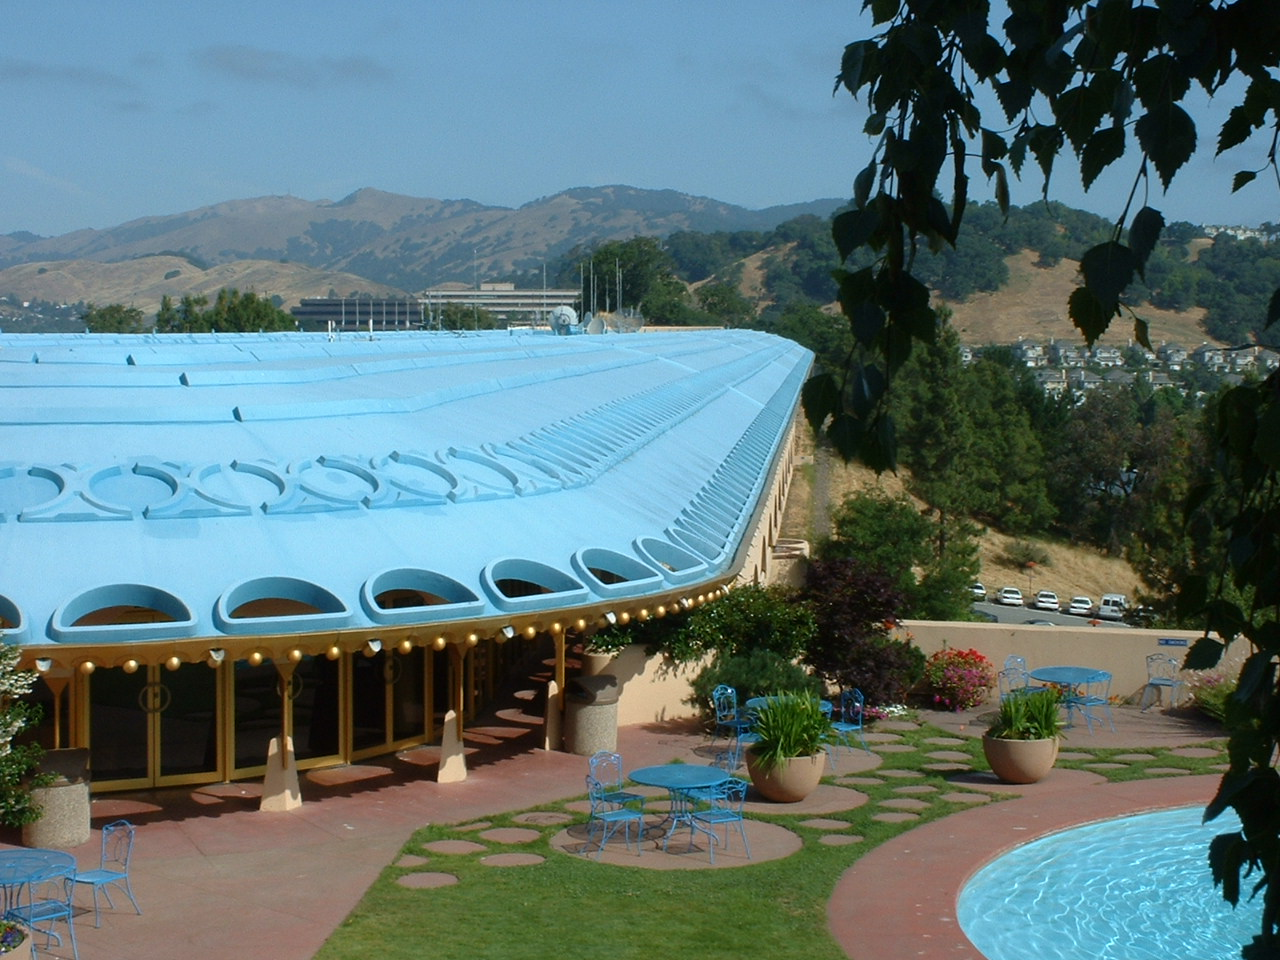 Marin County Civic Center Roof